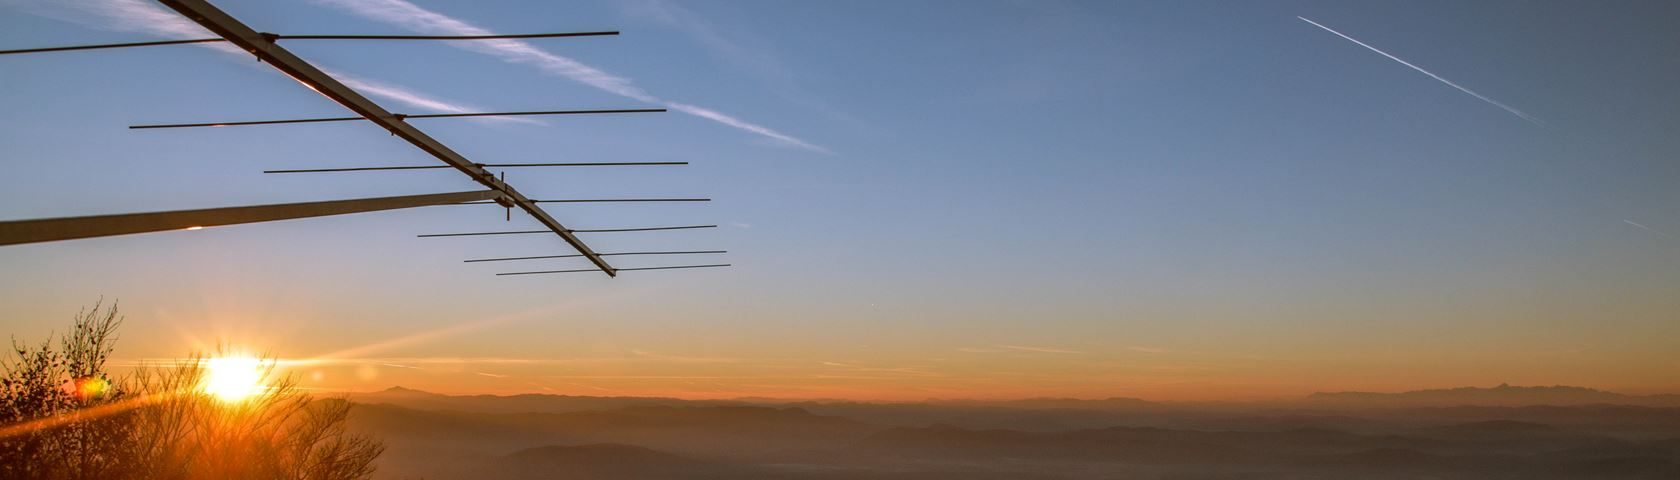 Ham Radio Antenna Images Wallpaperfusion By Binary